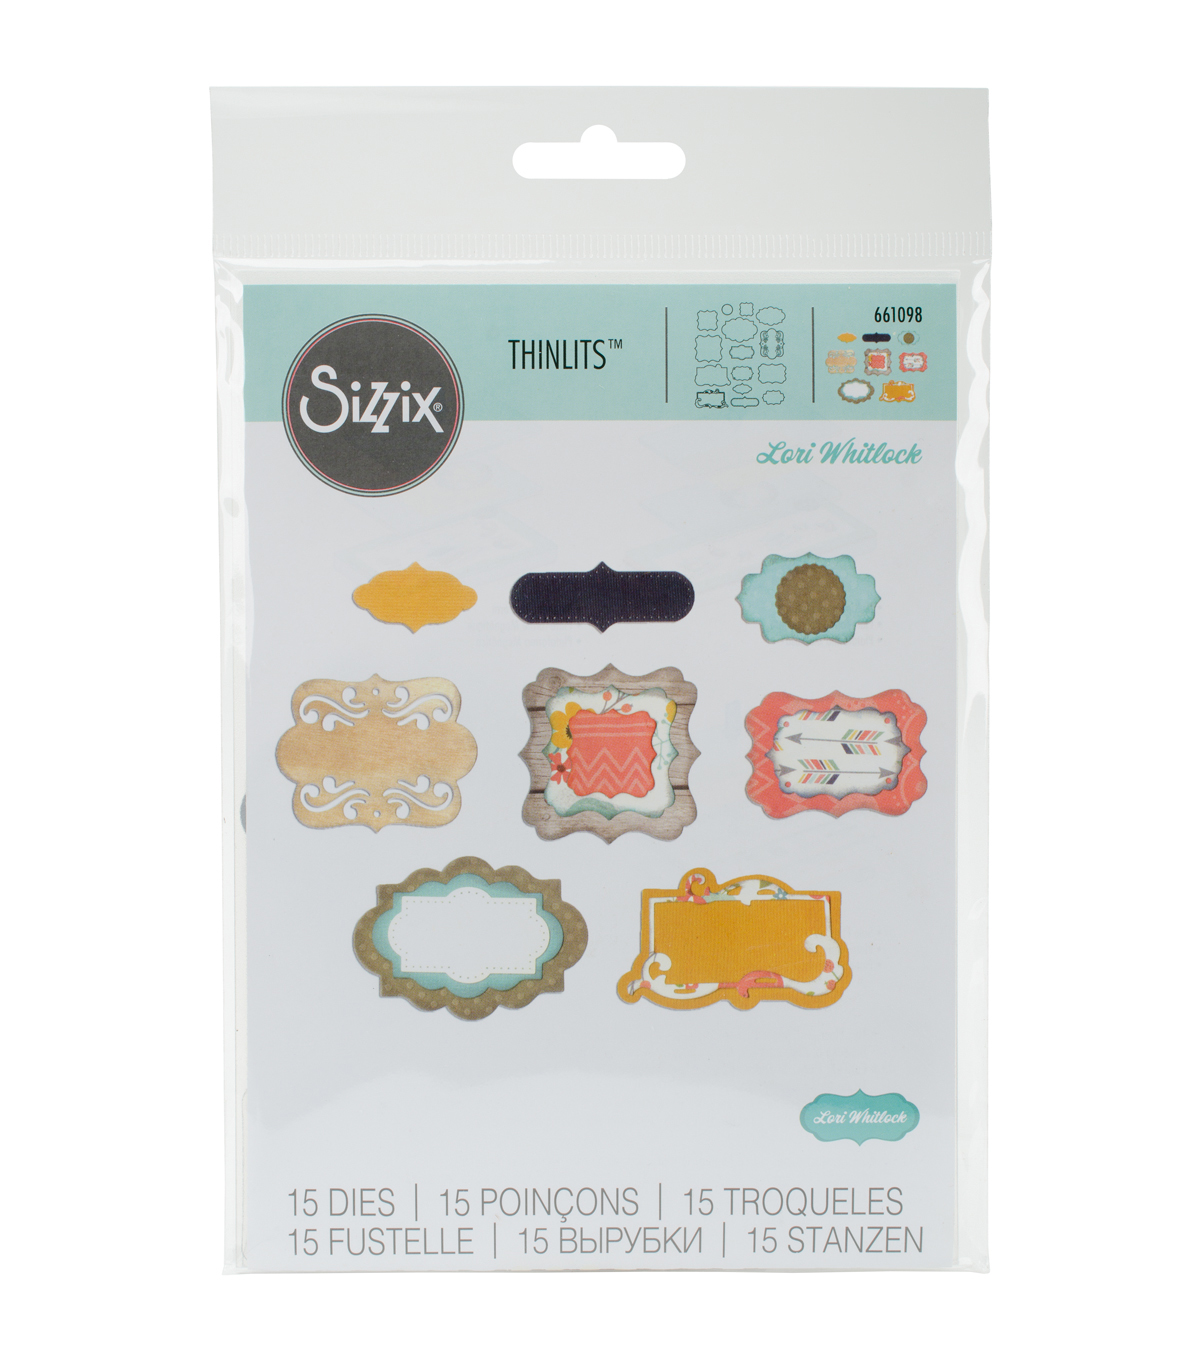 Sizzix™ Thinlits™ Lori Whitlock 15 Pack Dies-Perfect Labels